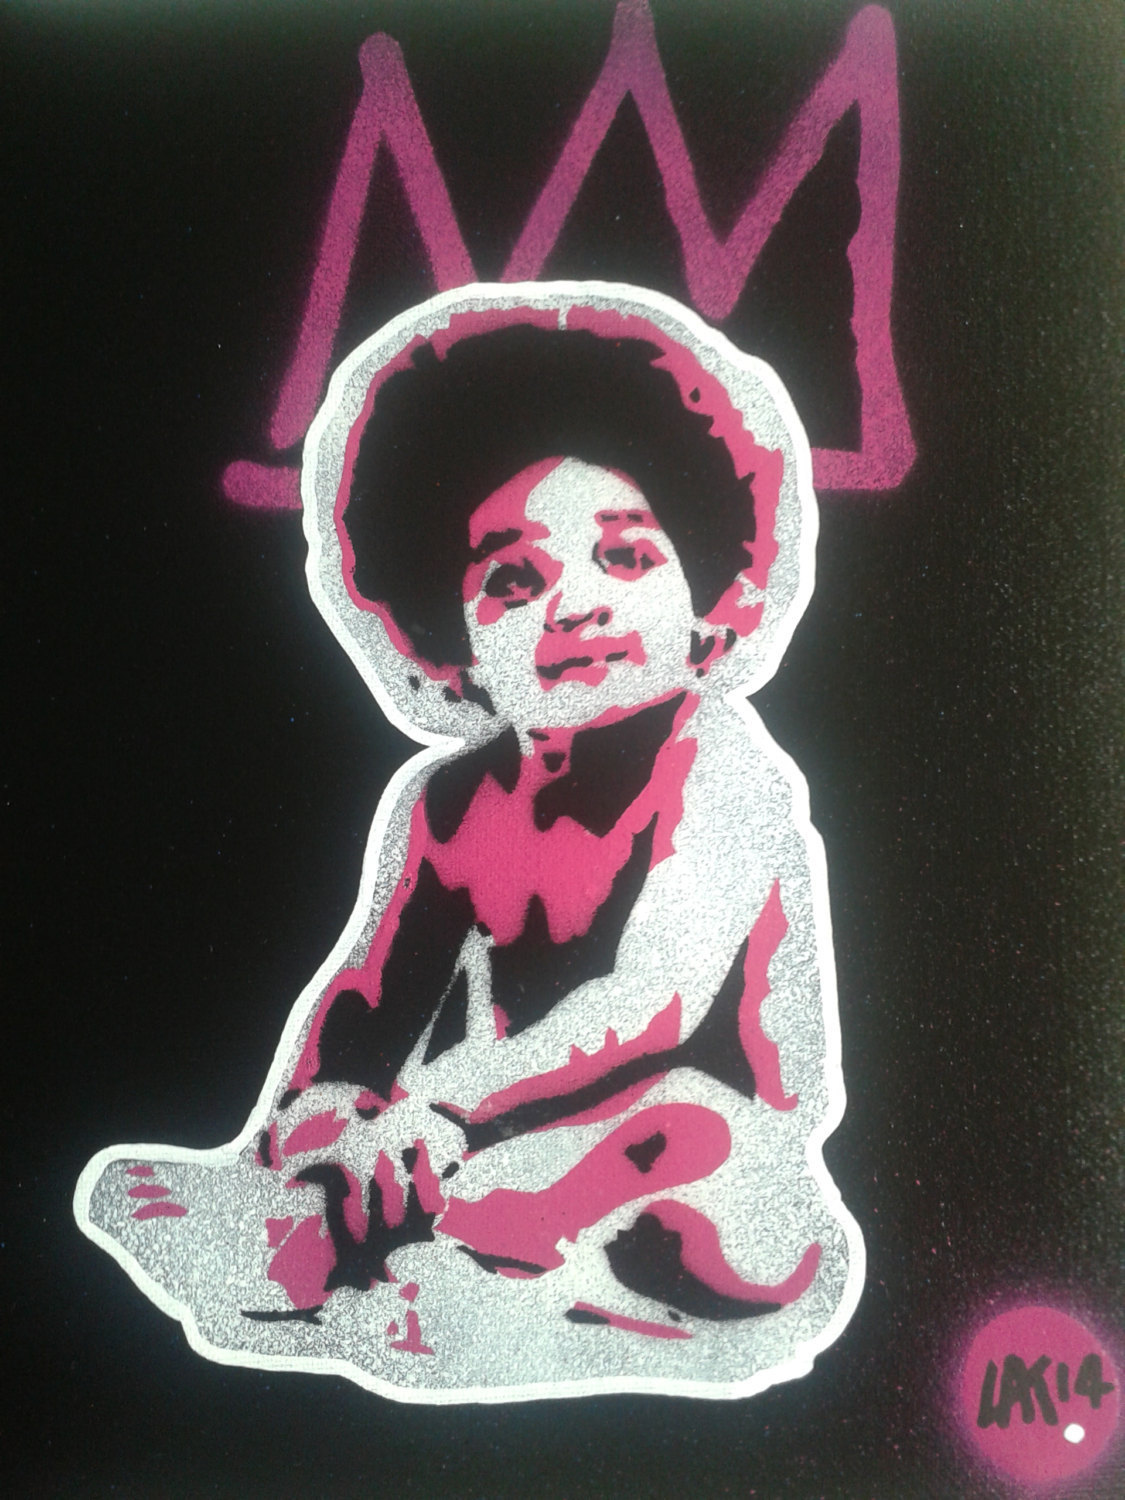 Biggie Smalls Baby Painting8 By 10 Inch Canvasstencilsspray Paints